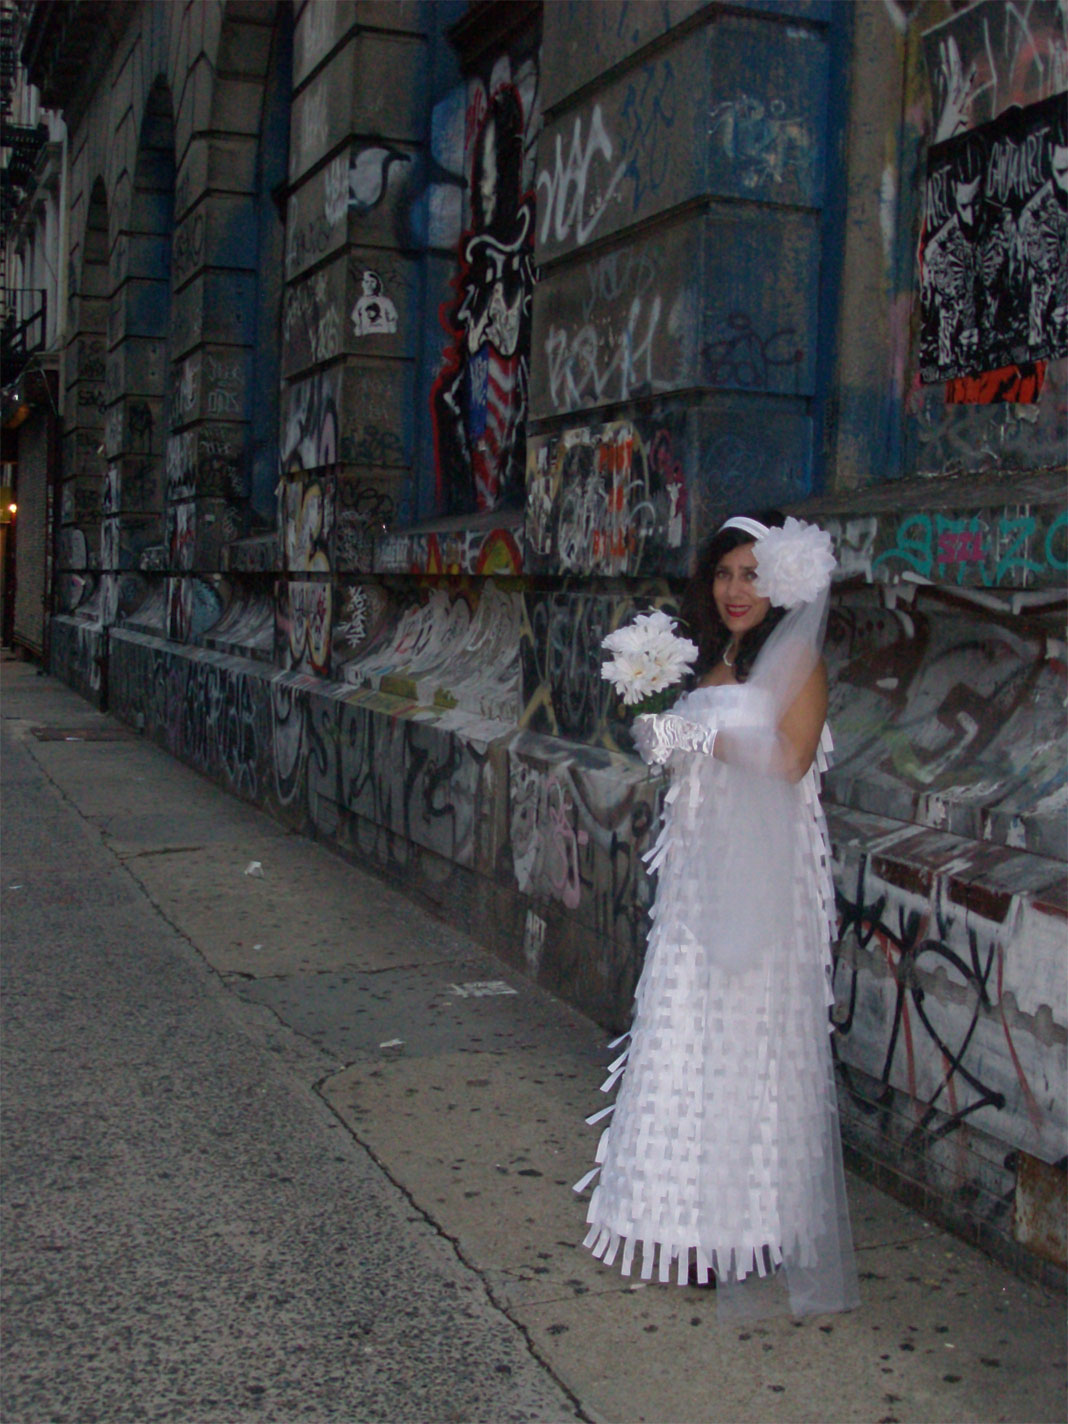 Wedding in the Bowery